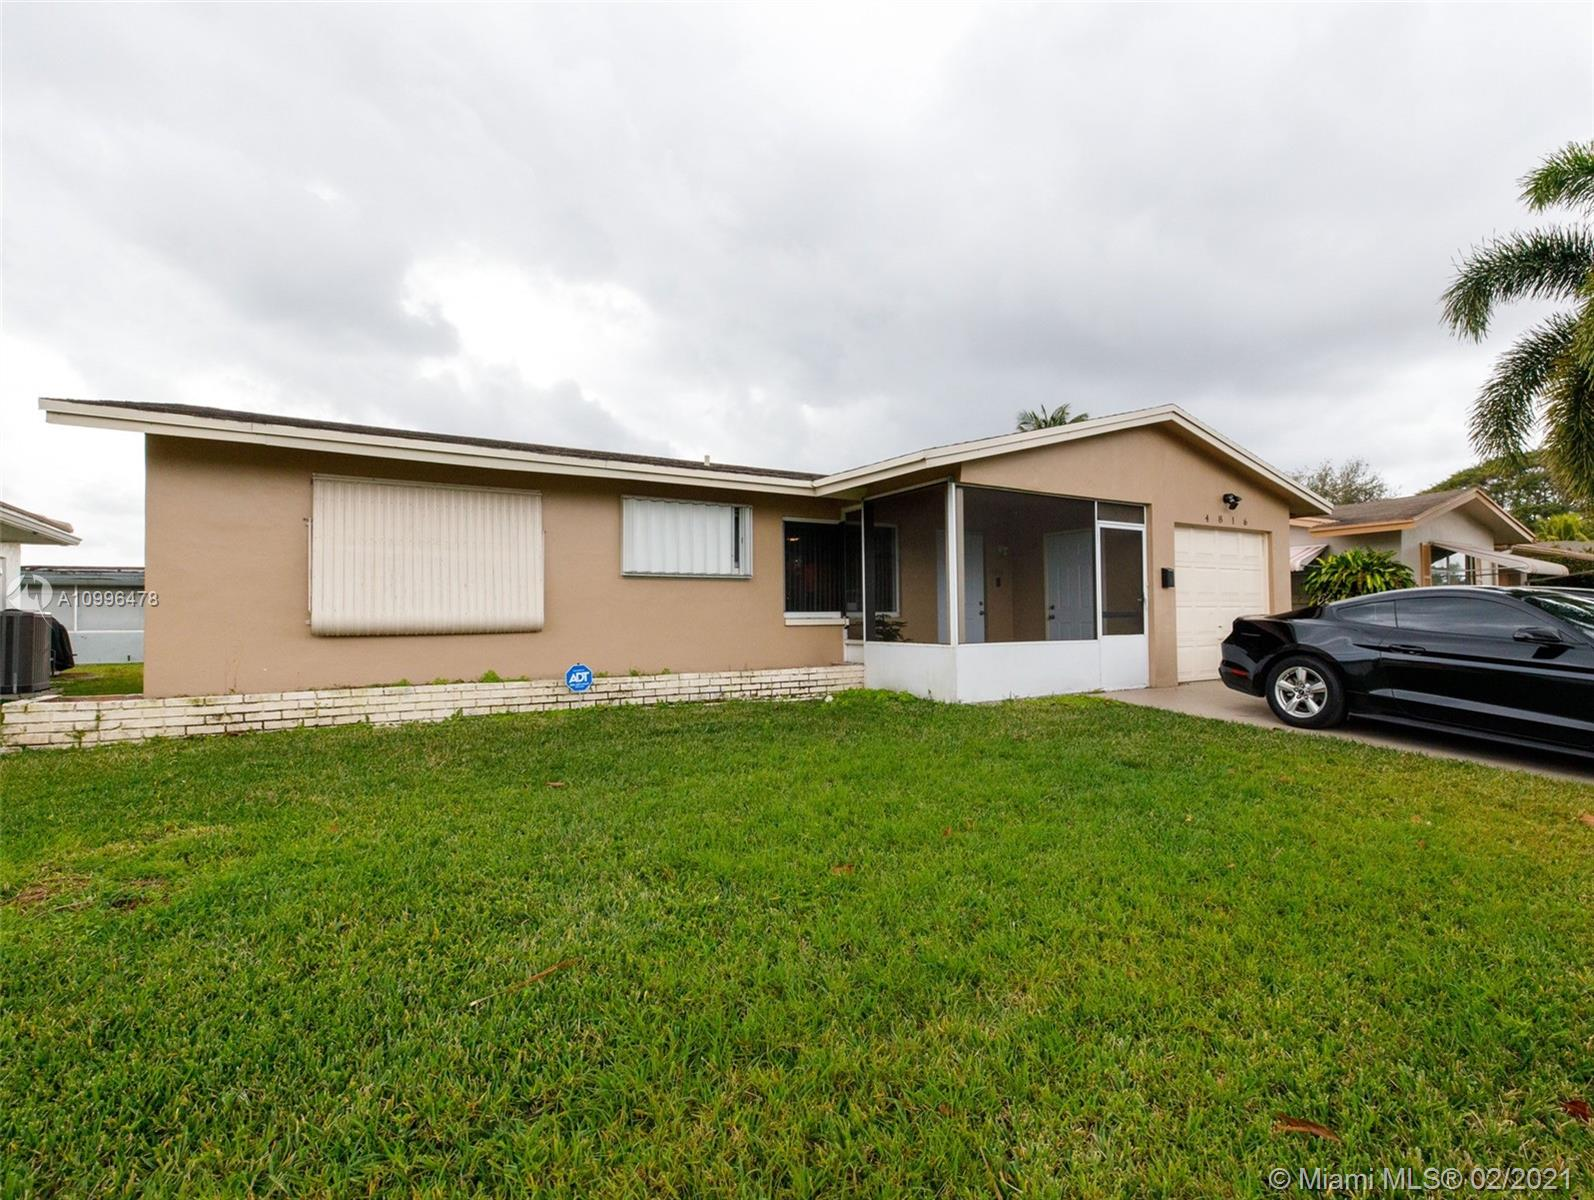 Highly sought after clean and quiet neighborhood. Beautifully renovated waterfront 2/2 w/ enclosed garage bonus room AND Florida Room! This home features a wine cooler, hurricane protection, stainless steel appliances, tile and laminate flooring, updated electrical and so much more. Low HOA dues. This property is a must see, this home will not last!! Motivated seller..bring your offers!!!